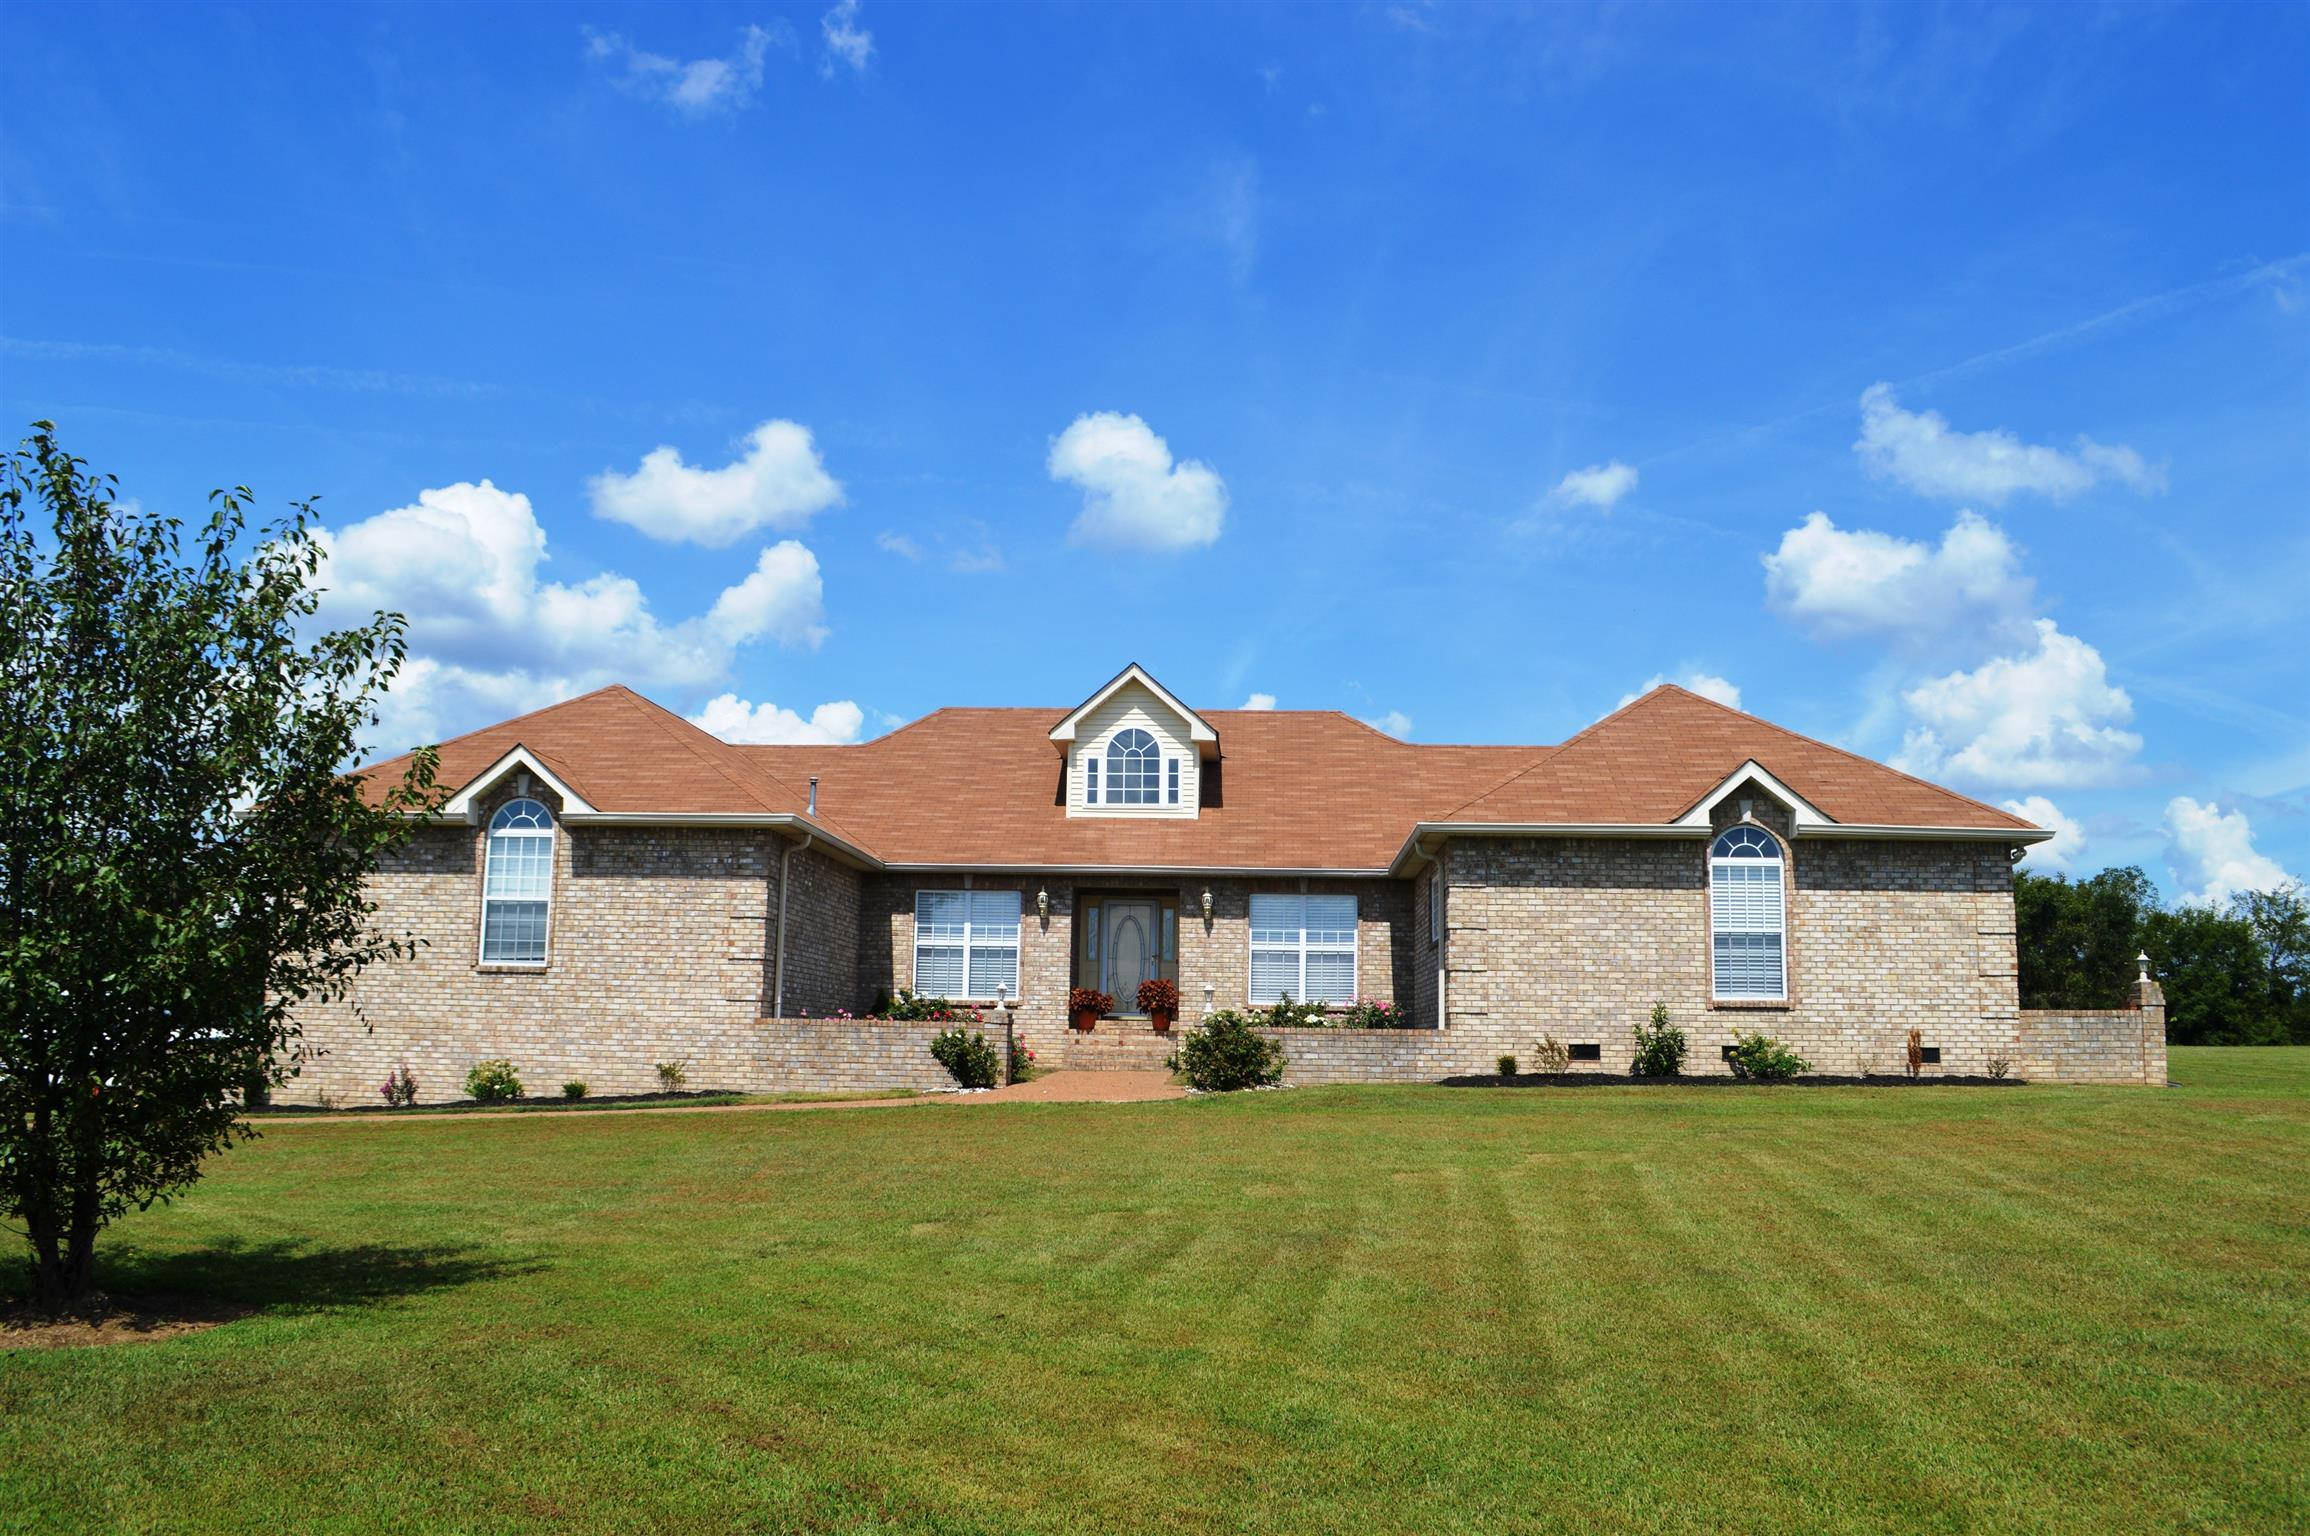 1250A Liberty Ln # 1250A 37066 - One of Gallatin Homes for Sale